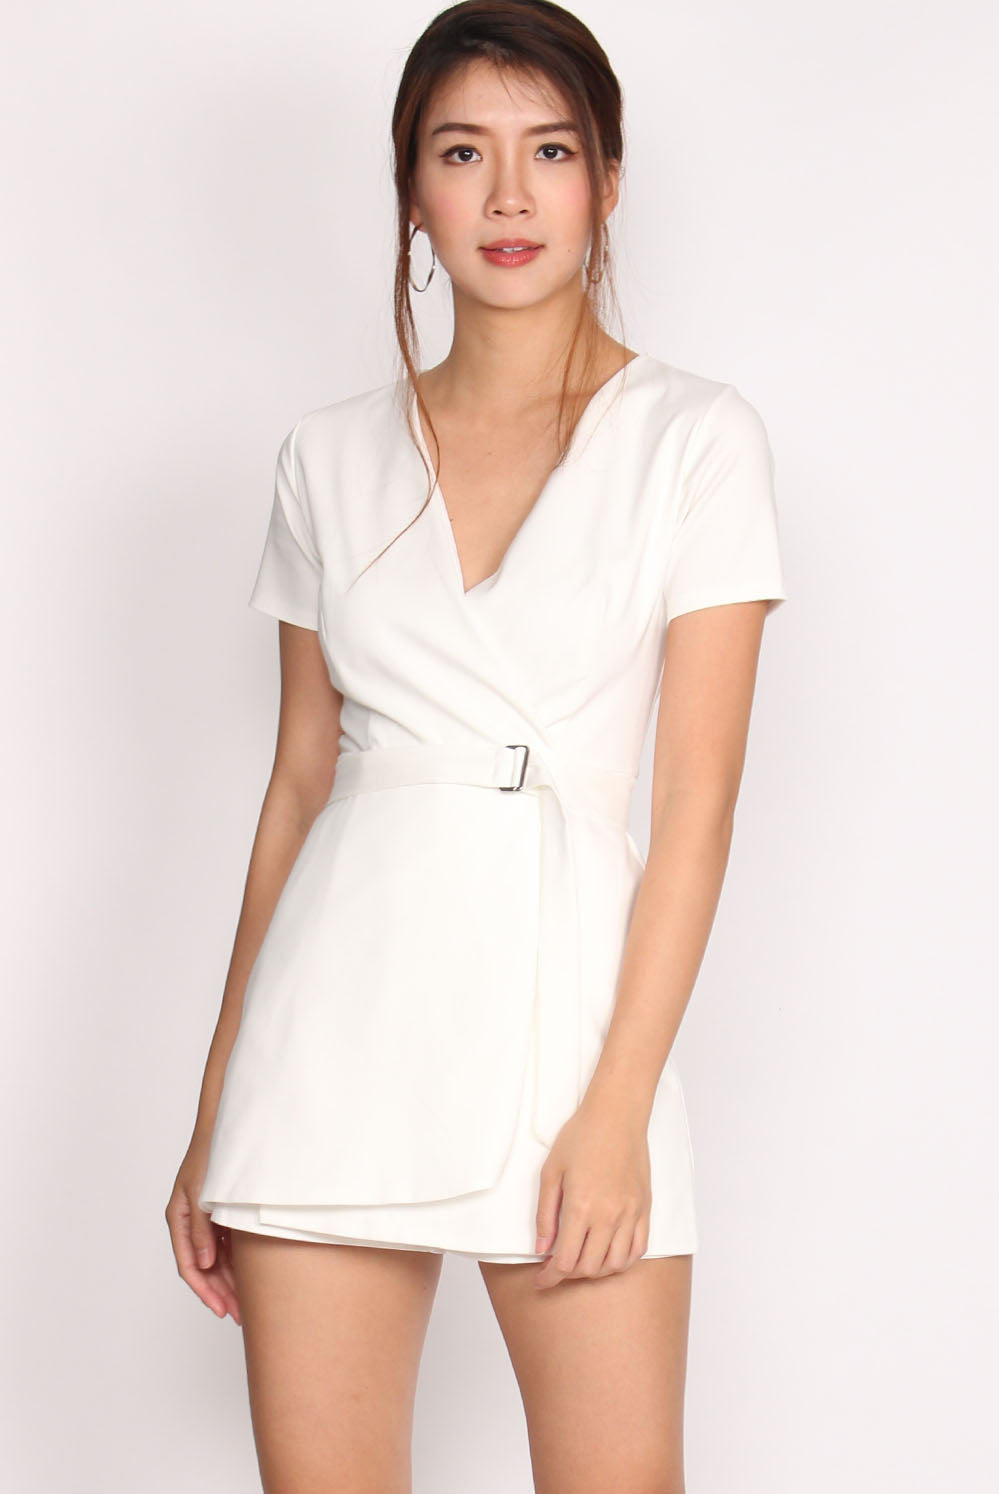 Helile Sleeved Skort Romper In White